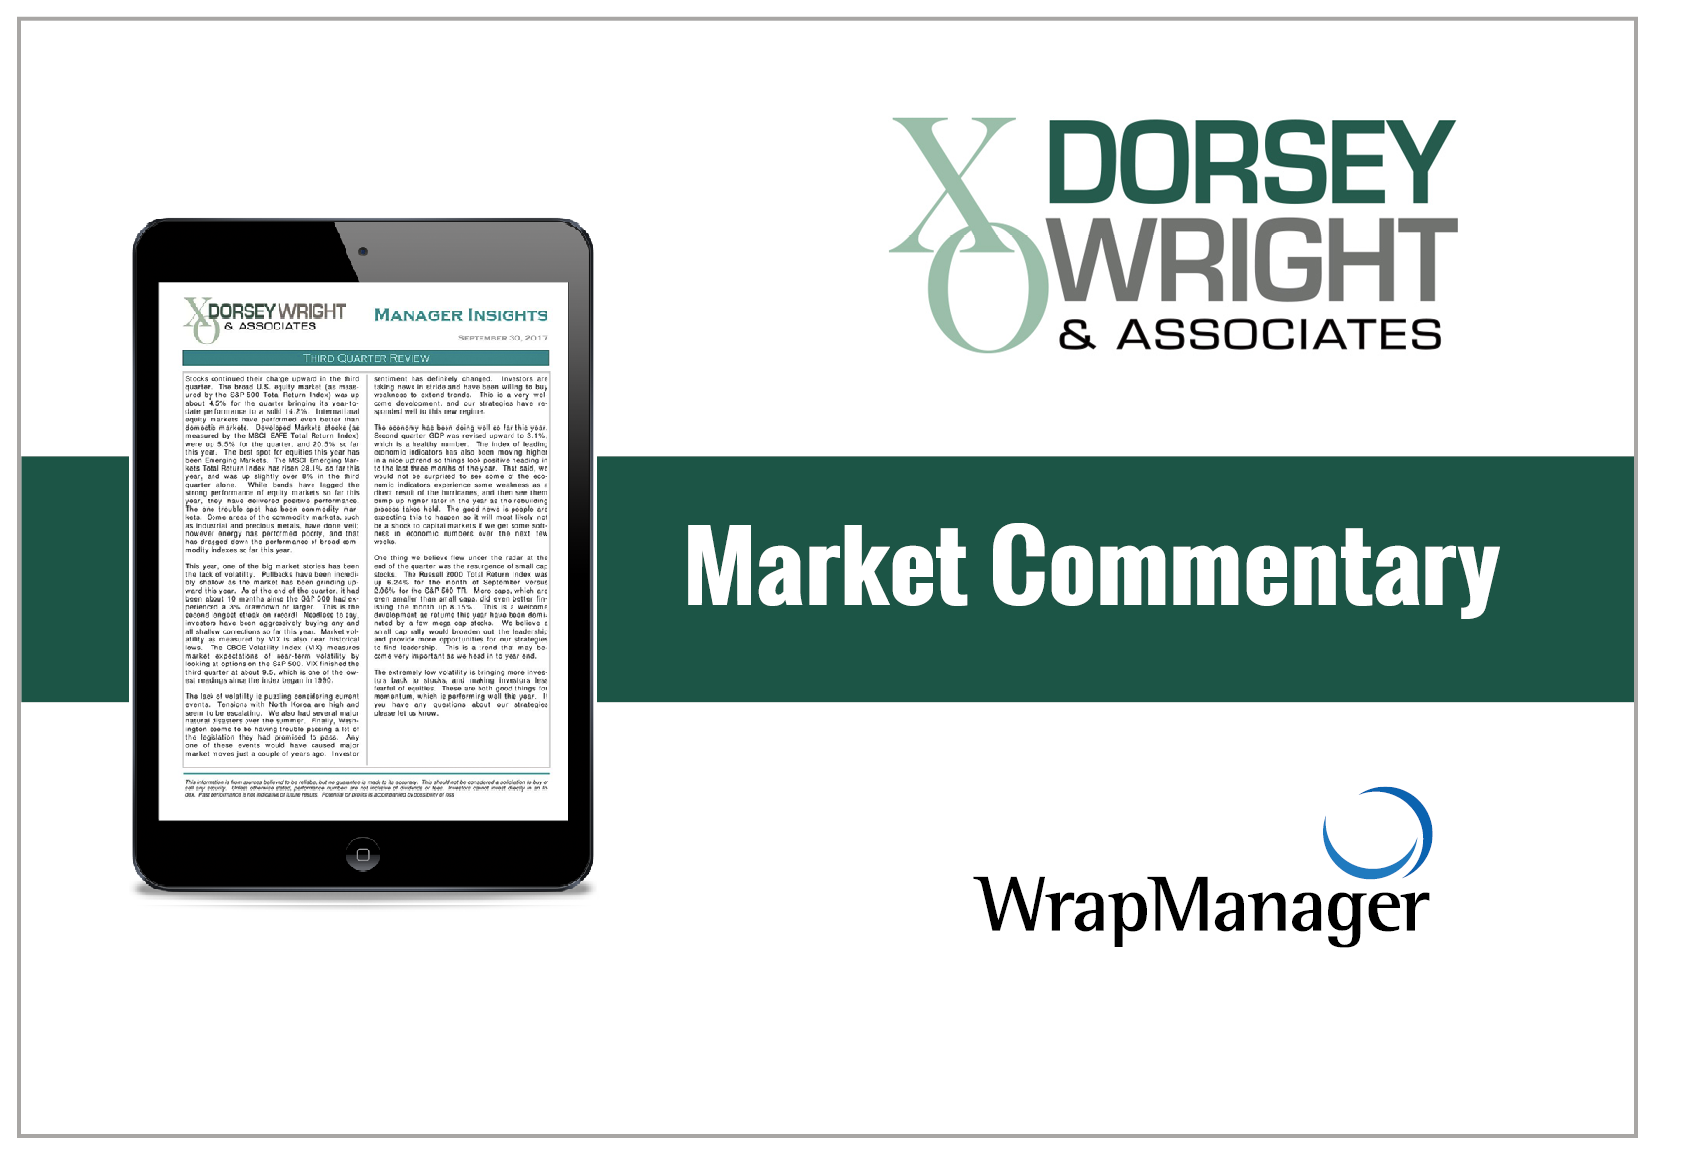 Dorsey Wright Releases Manager Insights for Q2 2018 Review